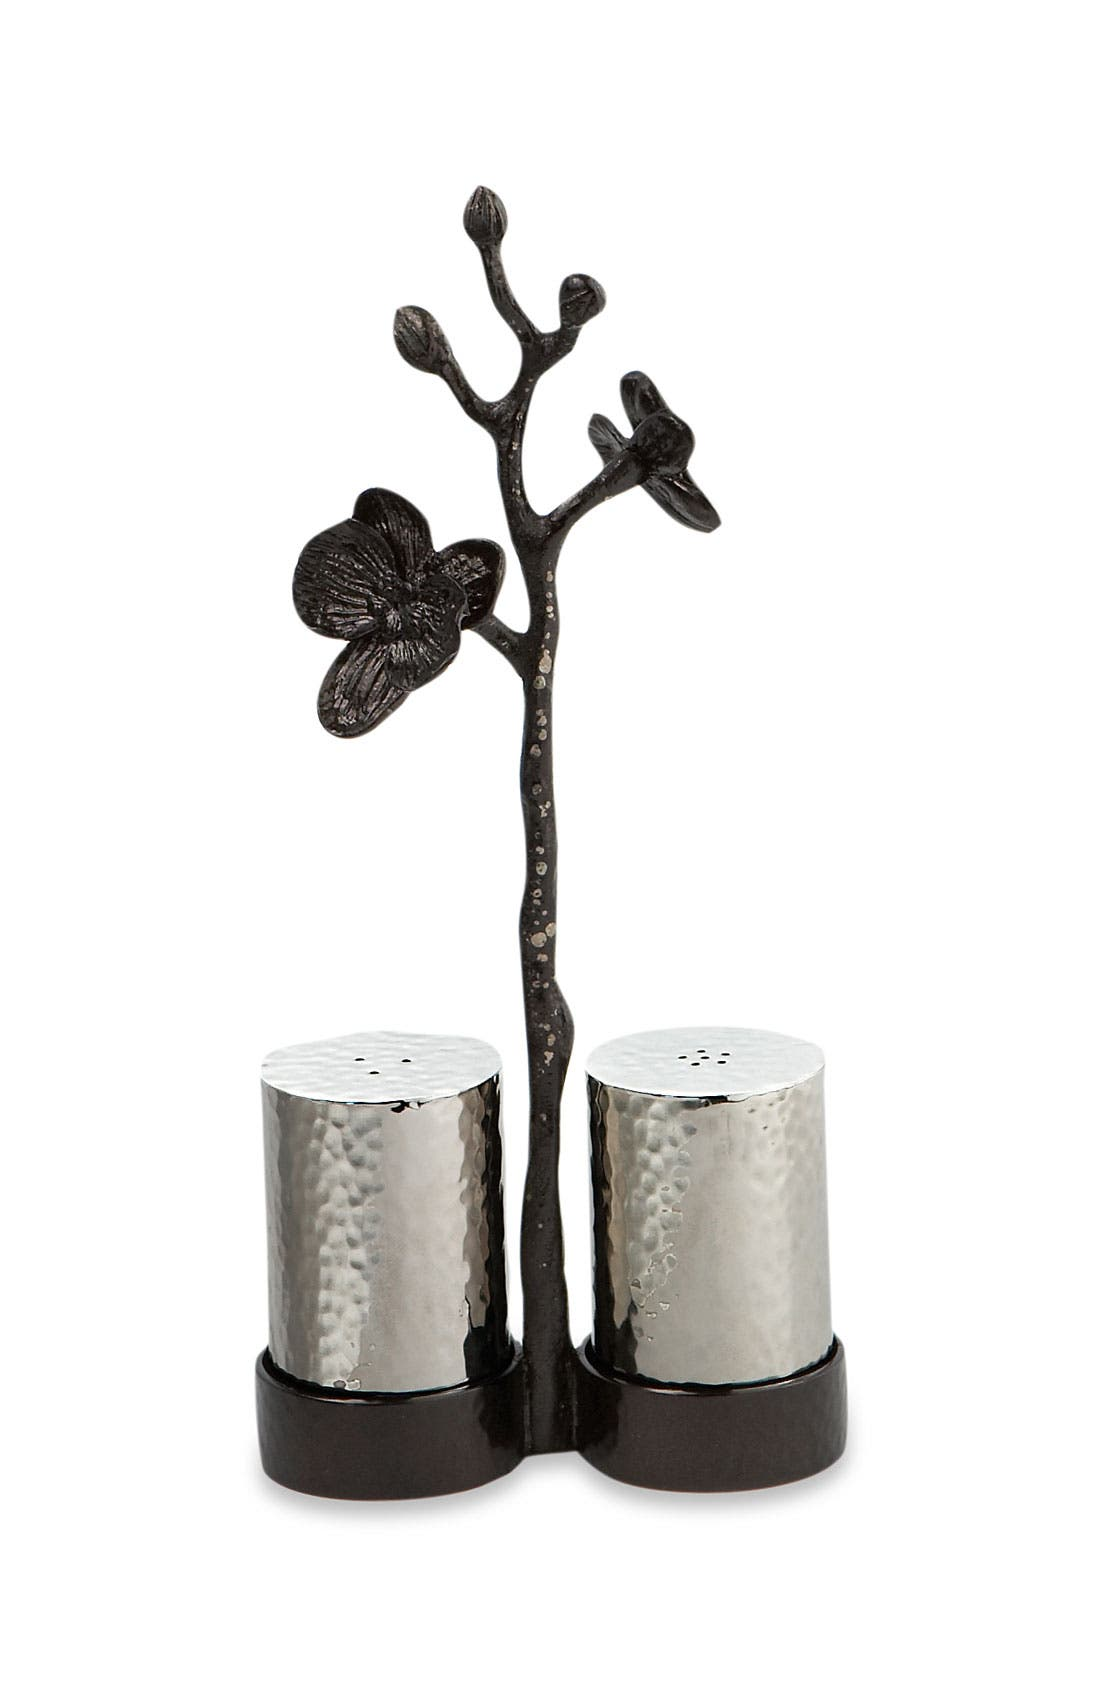 Alternate Image 1 Selected - Michael Aram 'Black Orchid' Salt & Pepper Shakers